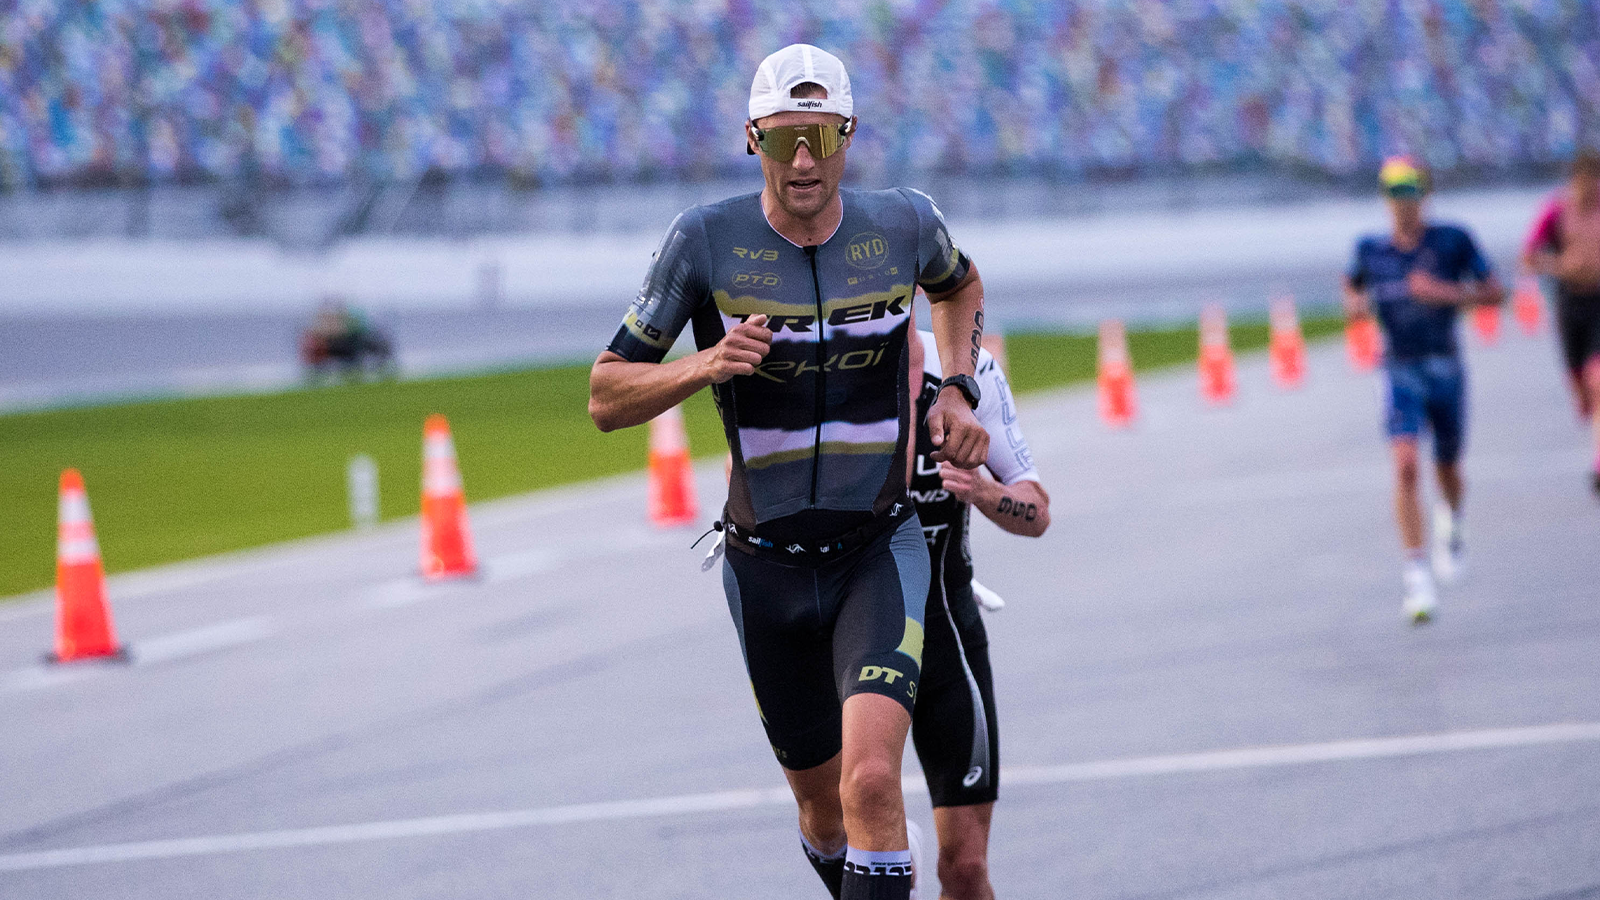 Race Results: Ironman 70.3 St. George North American Championship